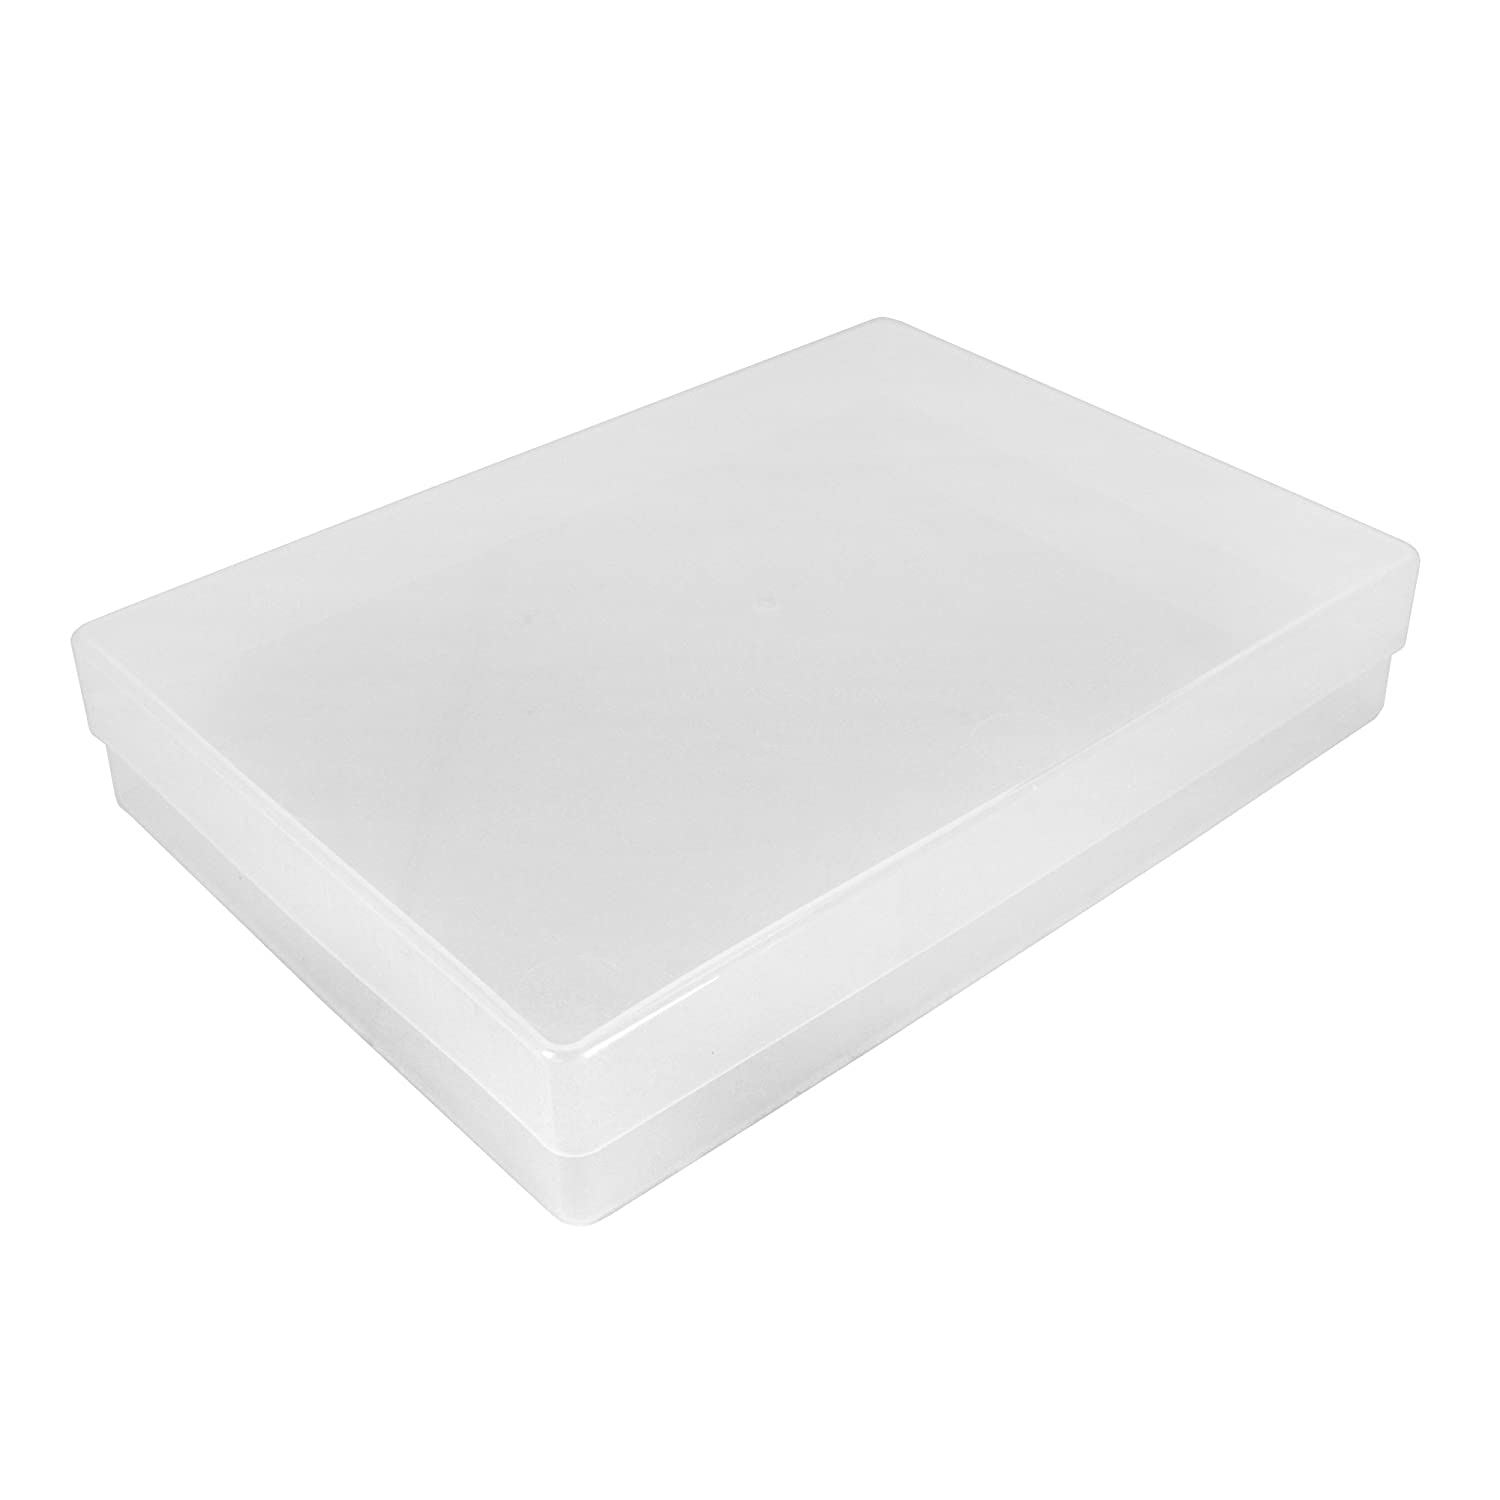 Westonboxes A4 Plastic Storage Boxes  Clear (Pack Of 5)